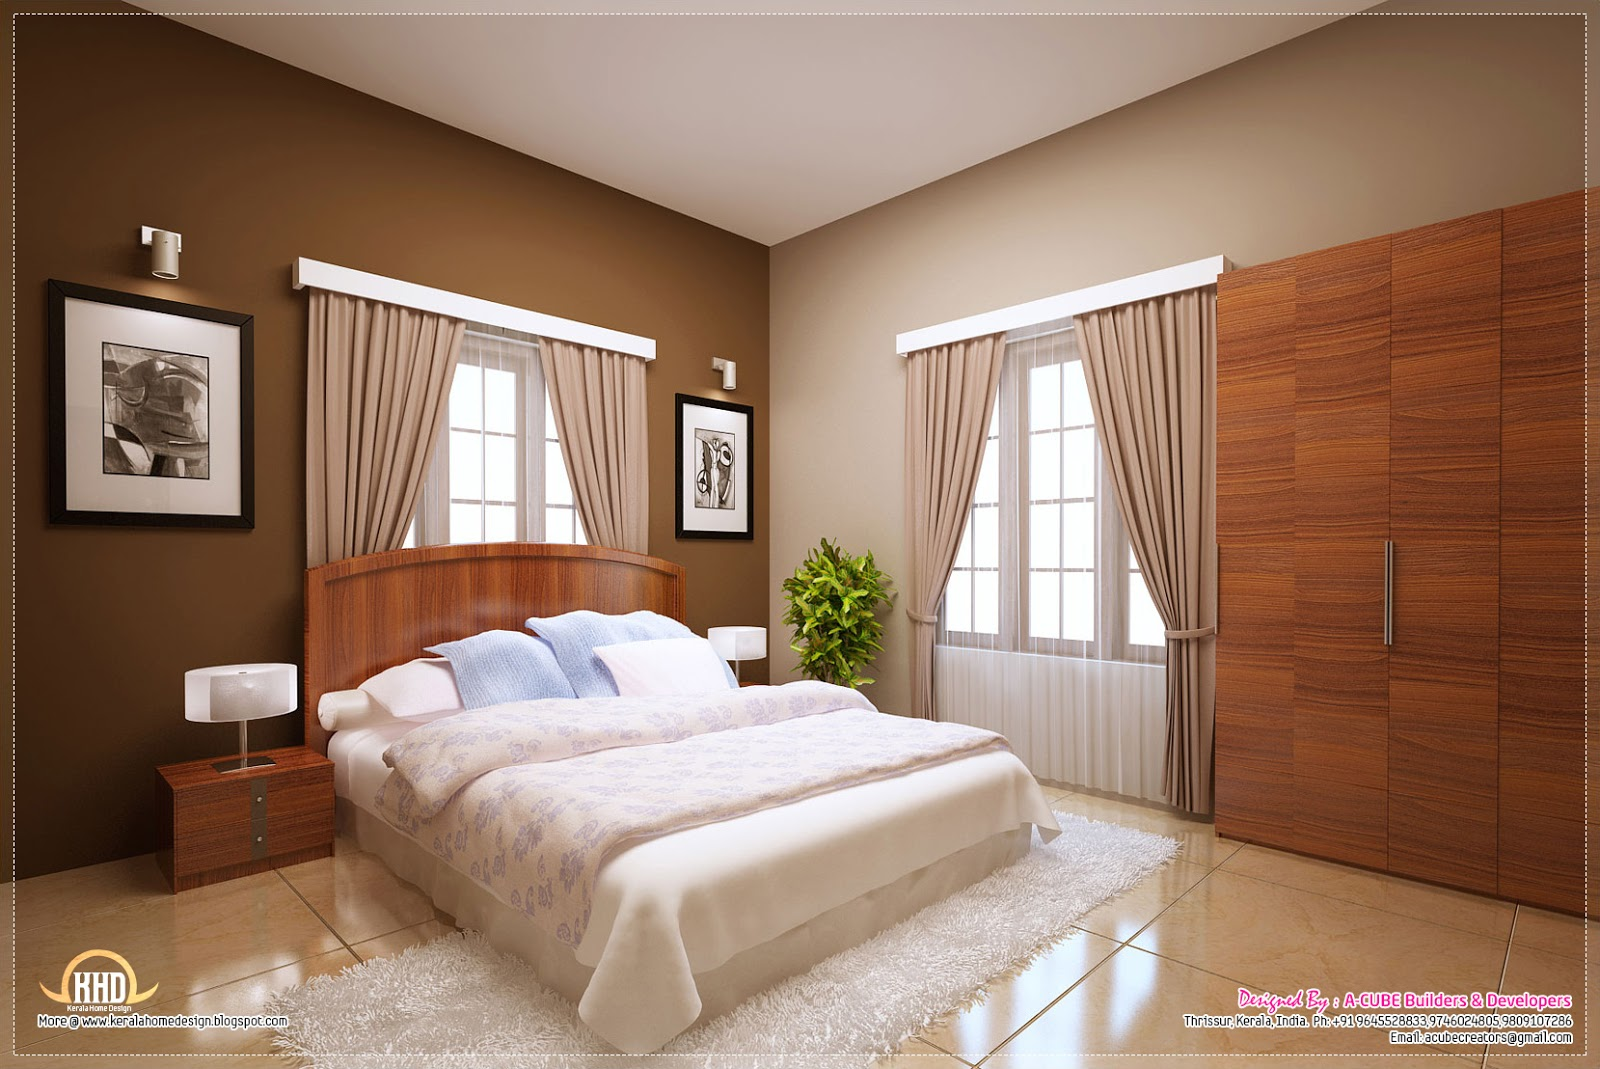 Awesome interior decoration ideas house design plans for Bedroom interior design pictures